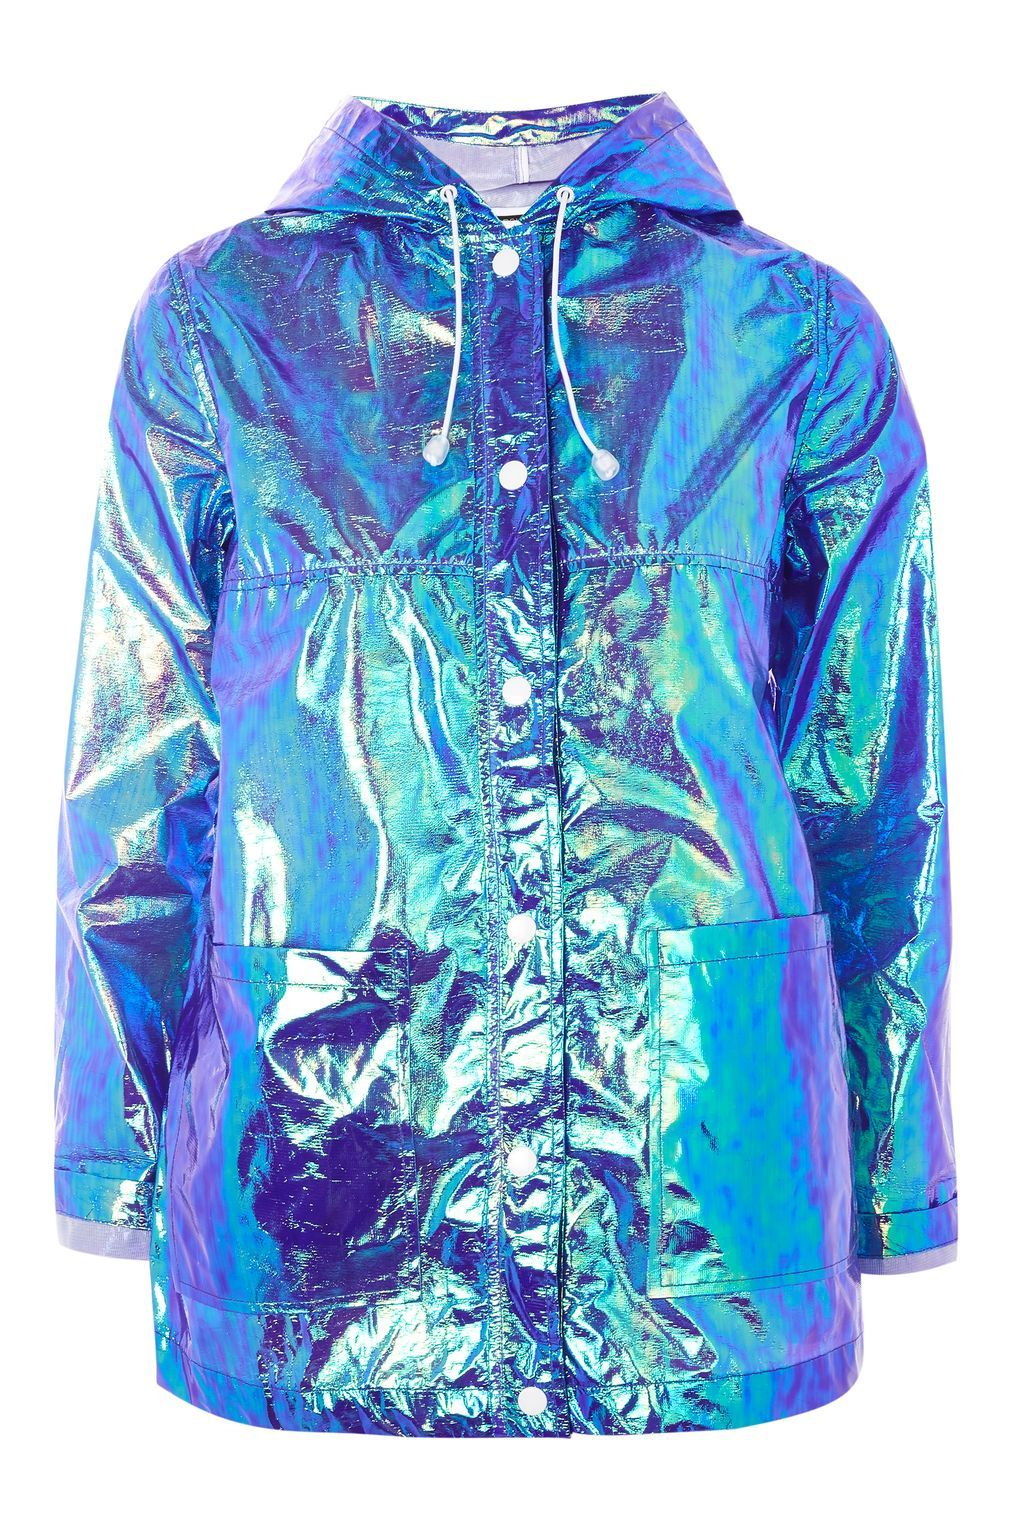 Girls Holographic Iridescent Shiny Silver Raincoat Hooded Jacket Childrens Kids